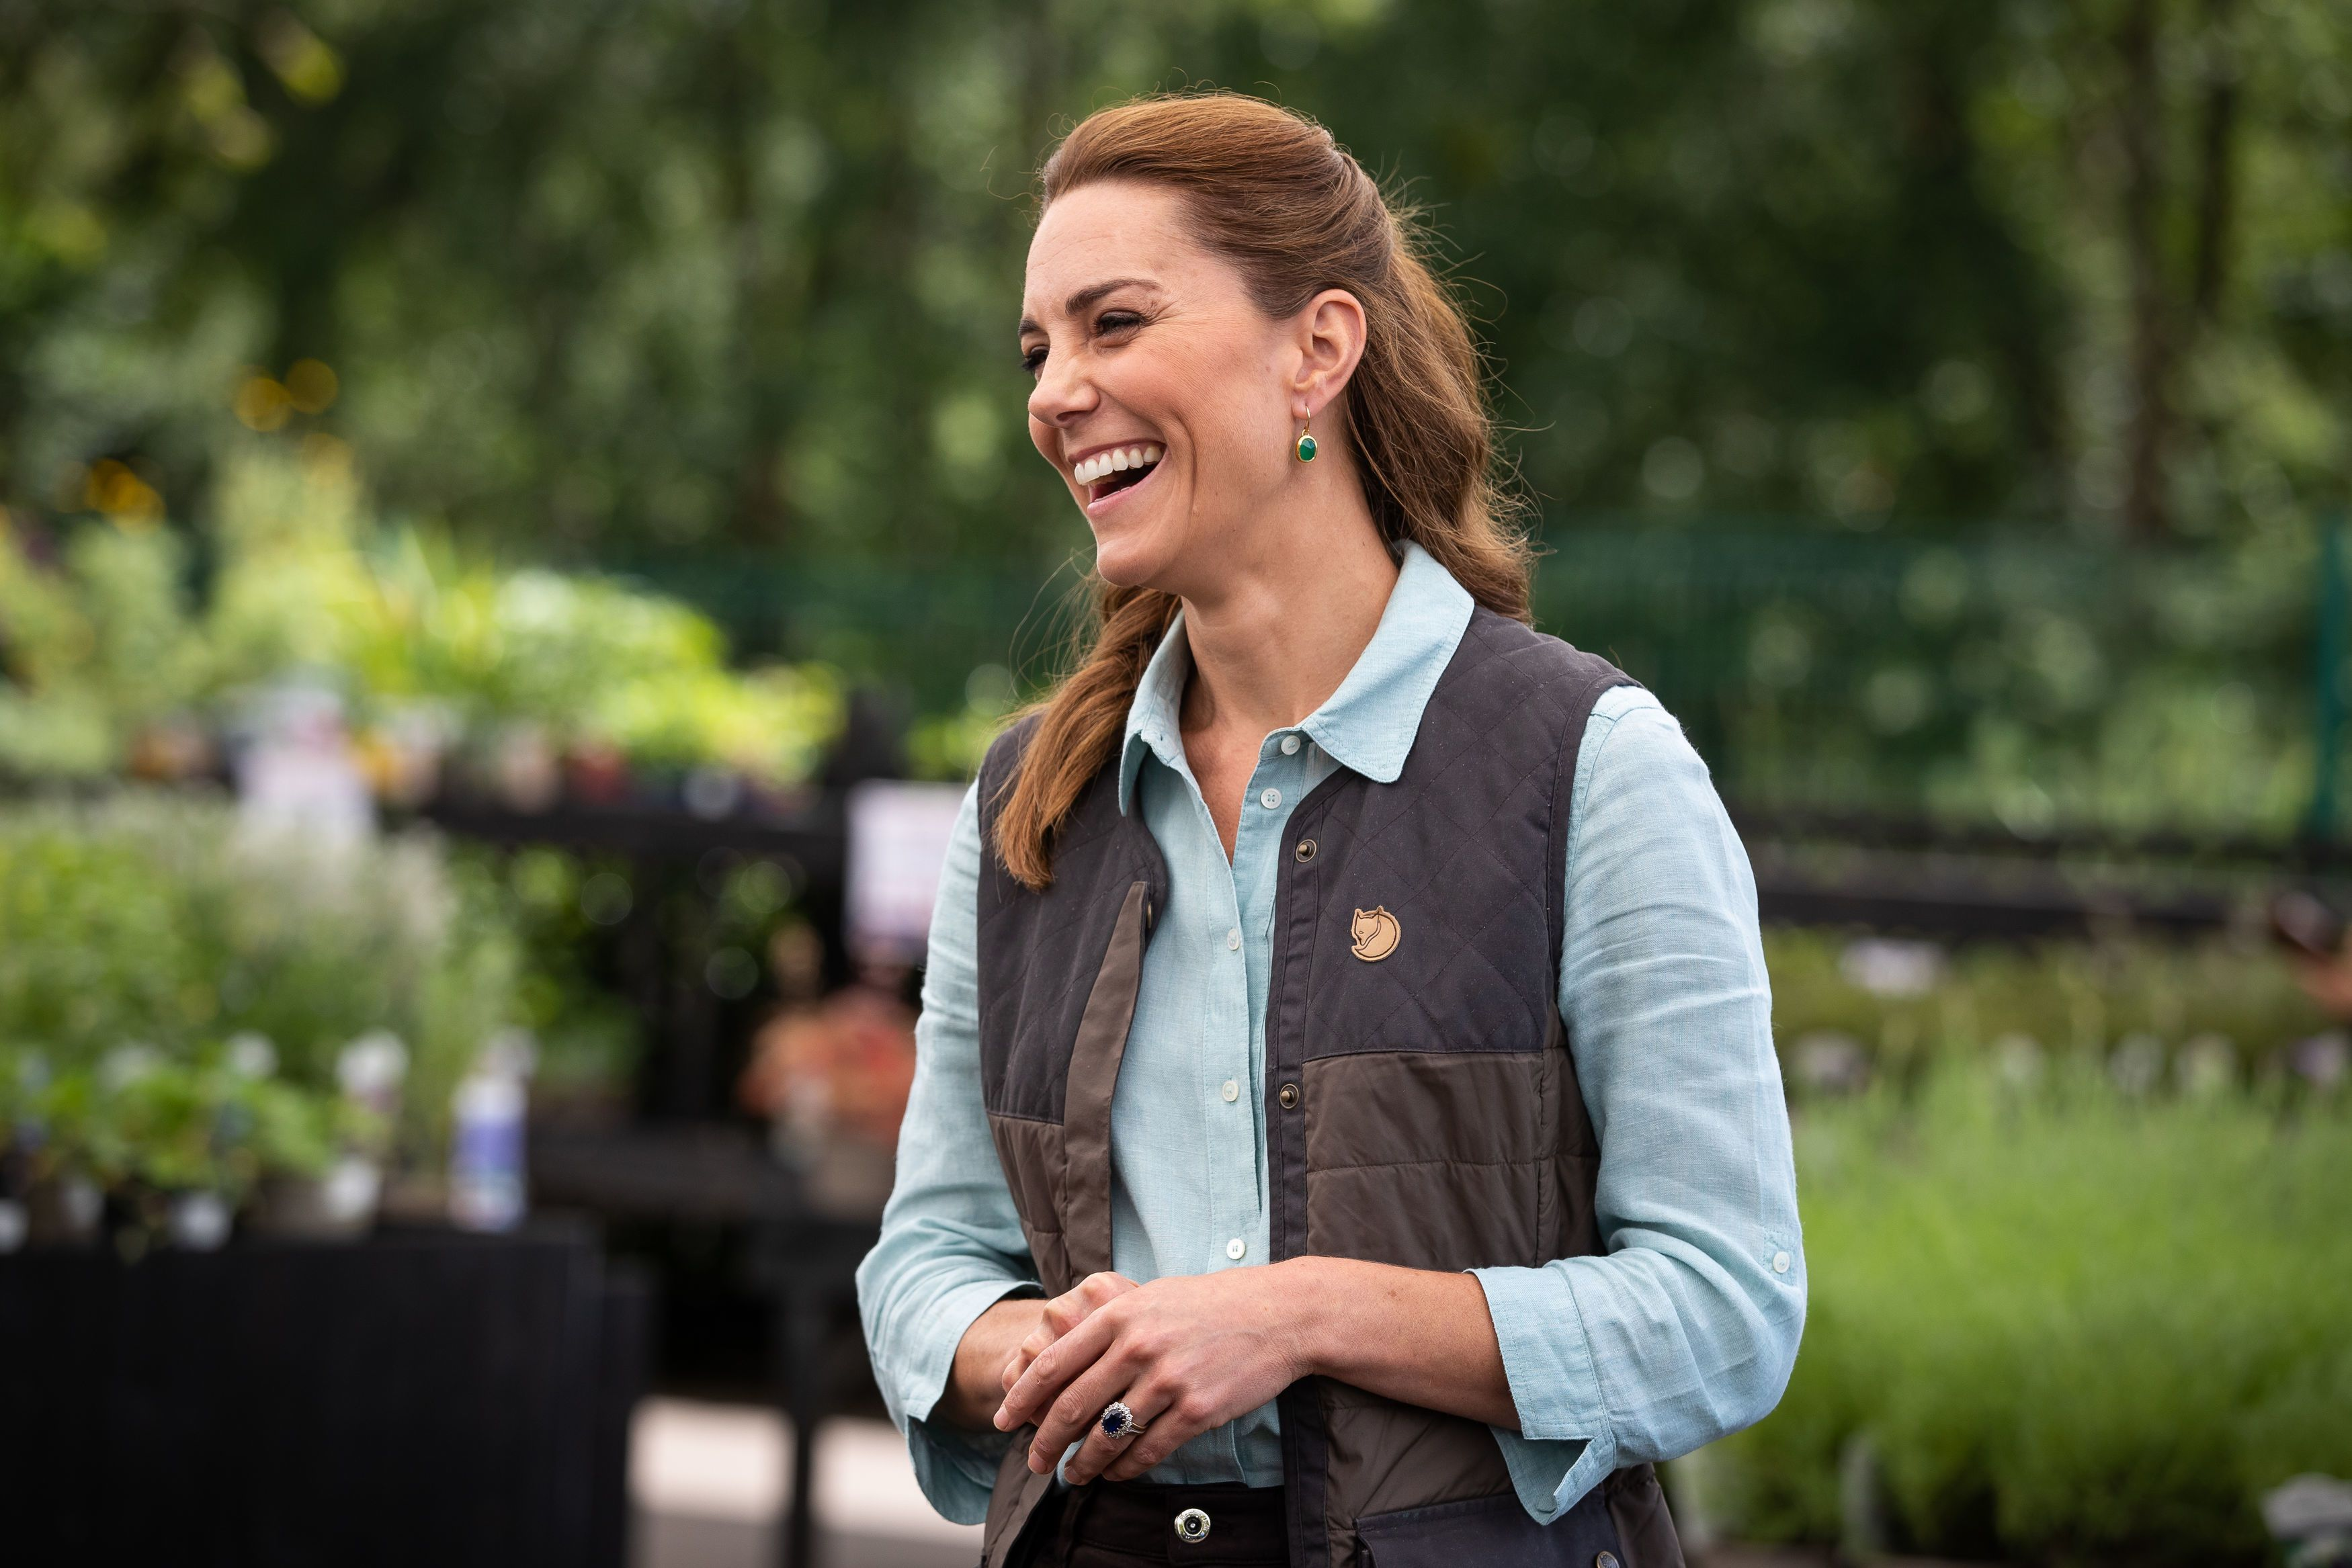 Kate Middleton casual and dressy looks are both popular choices for fans.